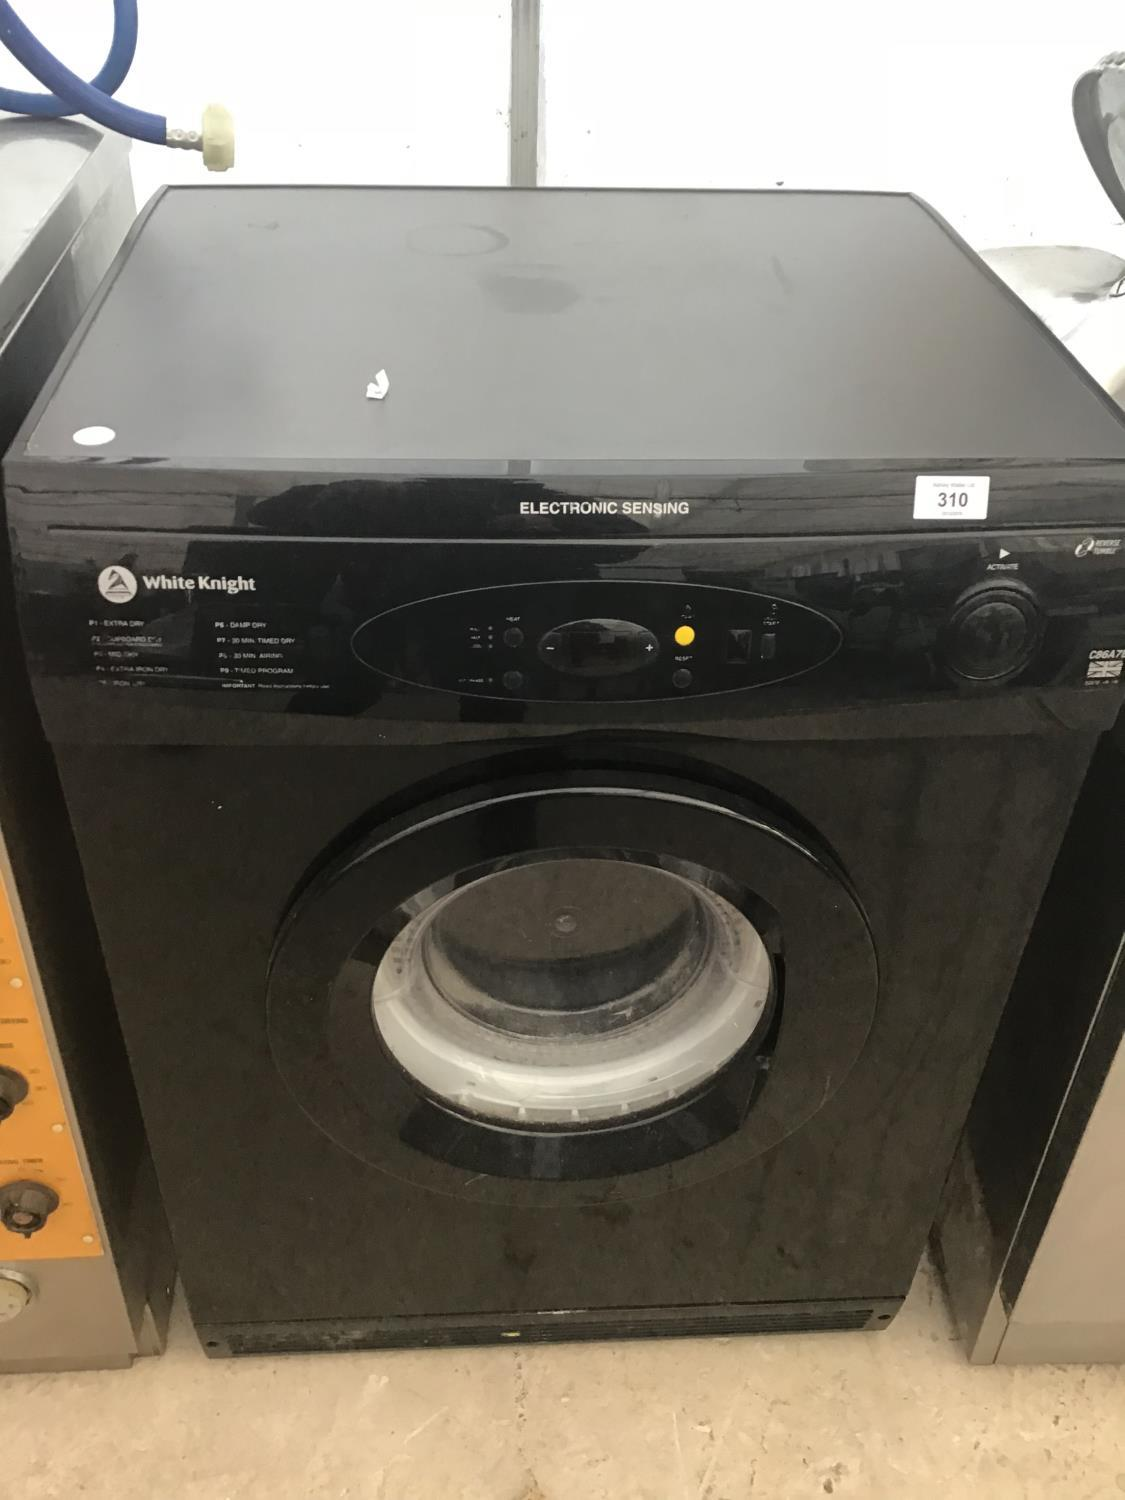 Lot 310 - A WHITE KNIGHT BLACK TUMBLE DRYER IN WORKING ORDER